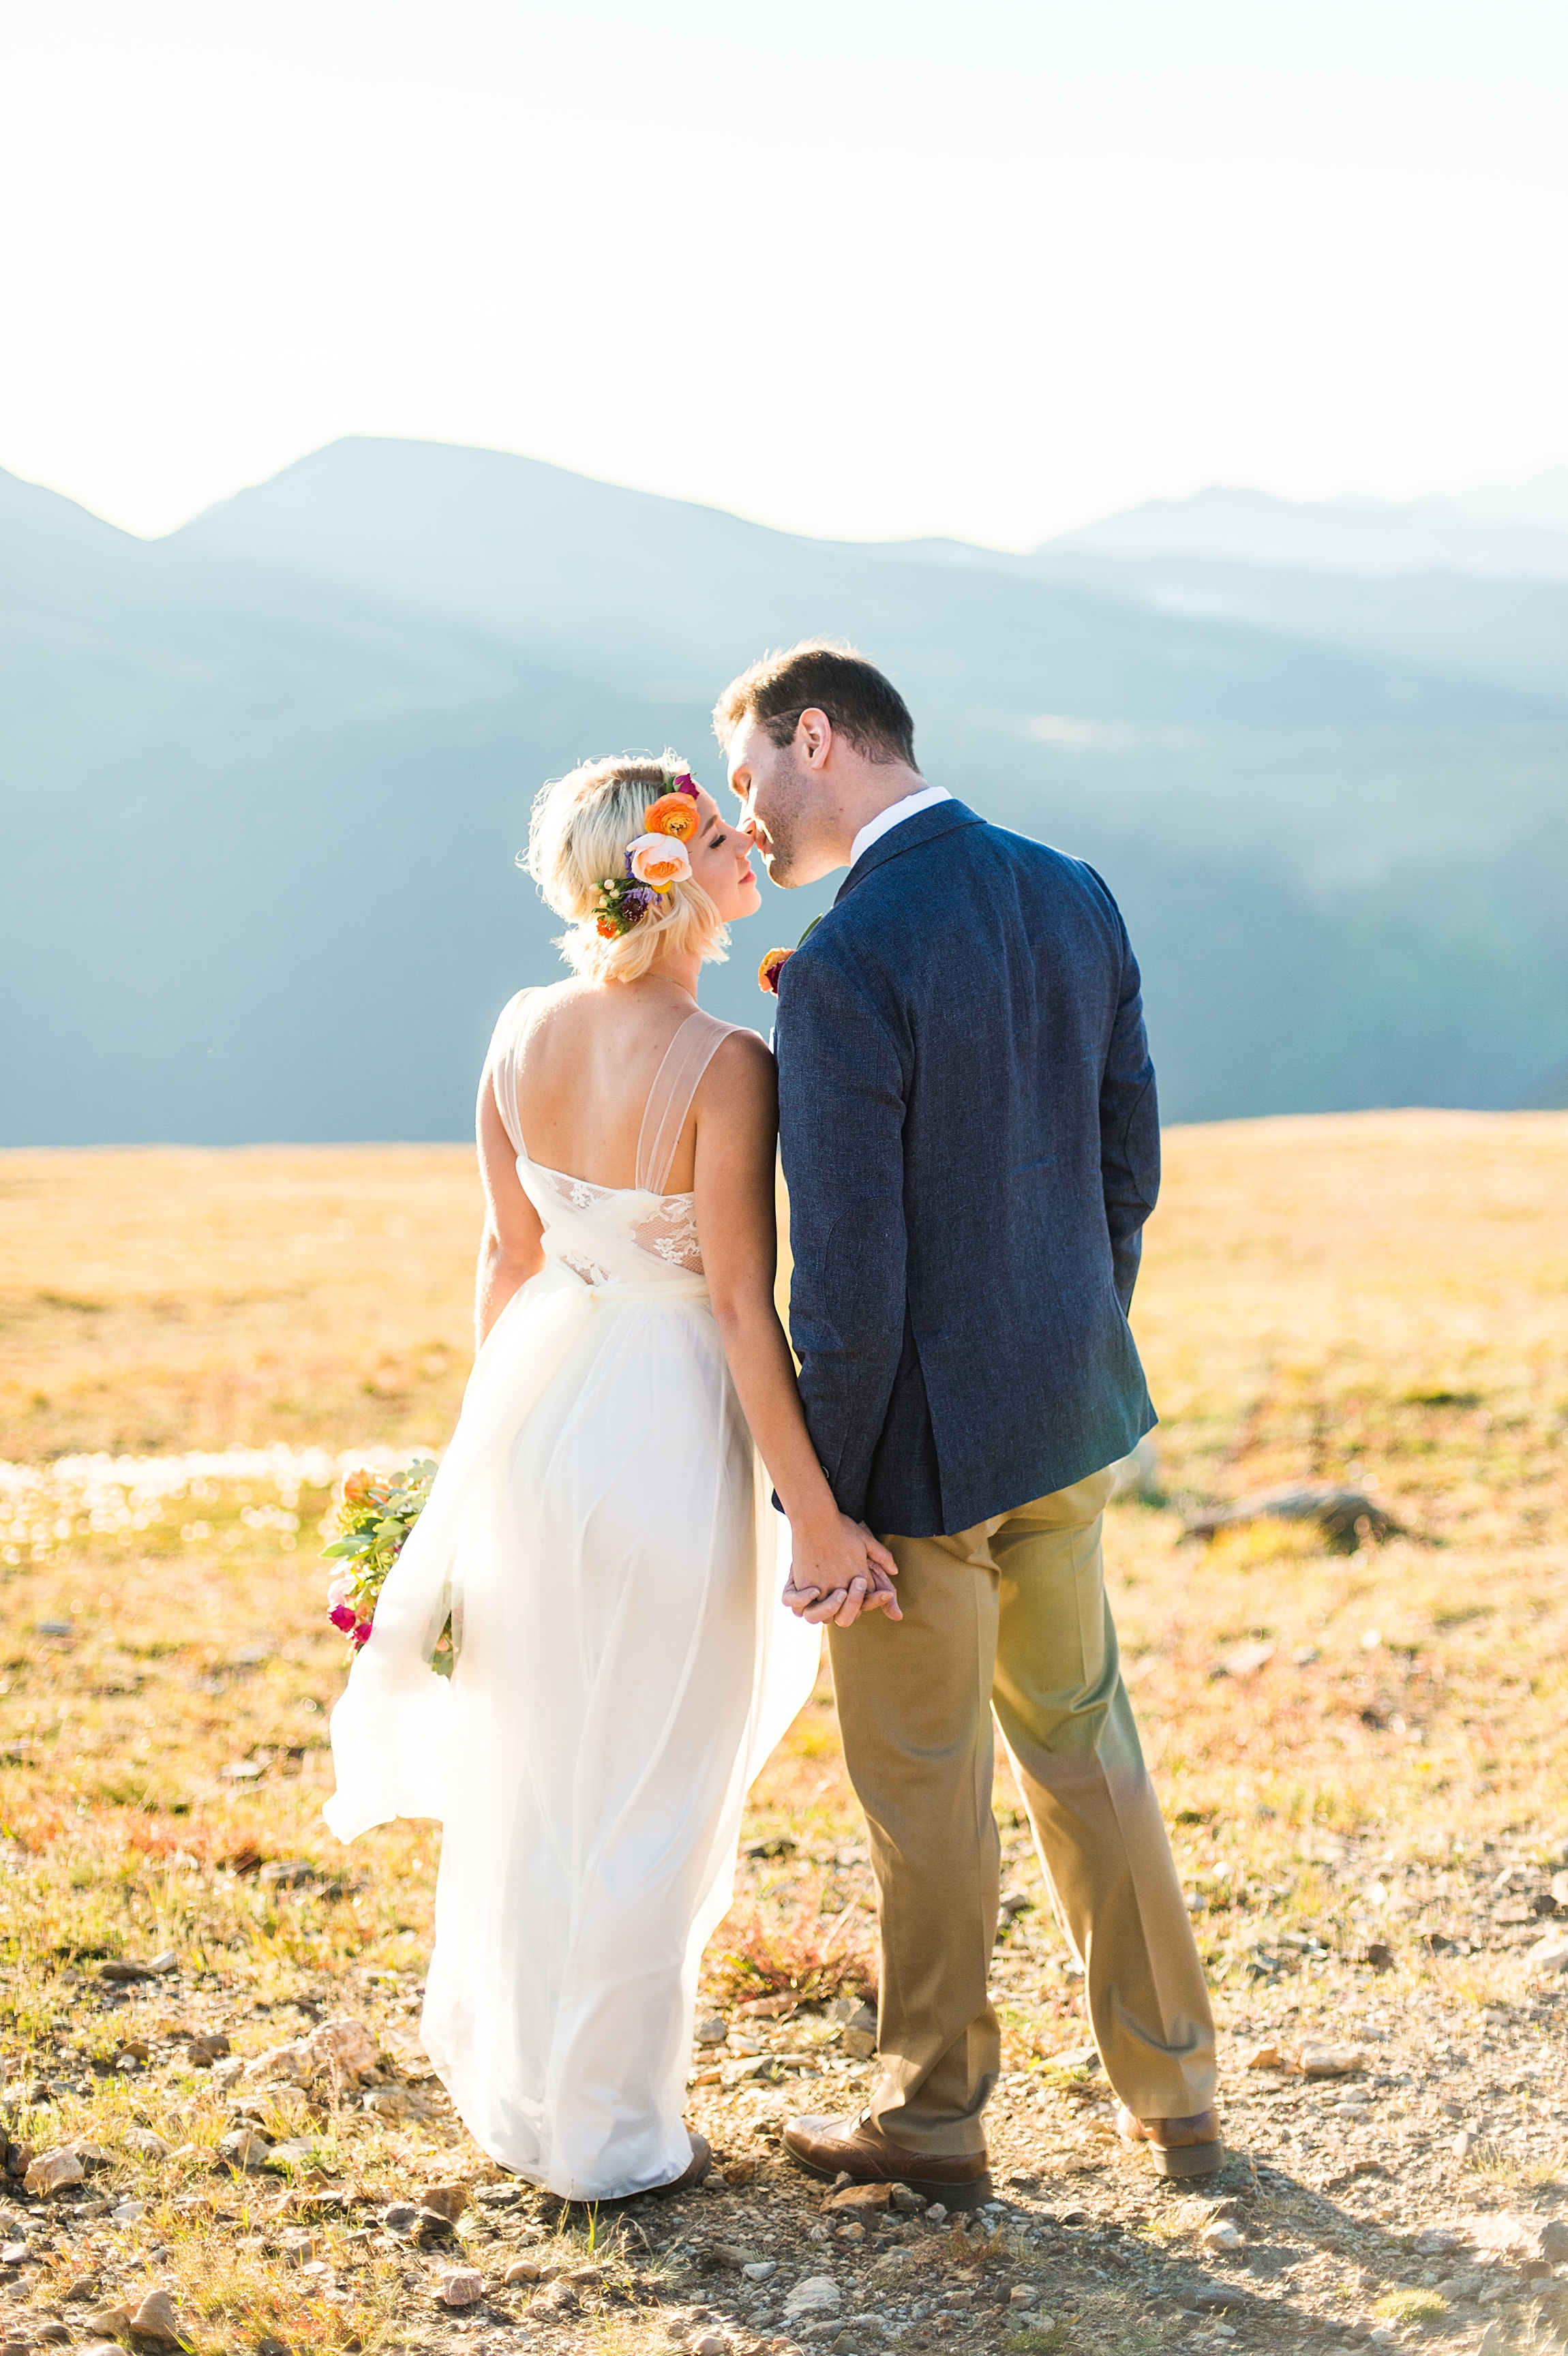 20160821-rocky-mountain-park-wedding_0025